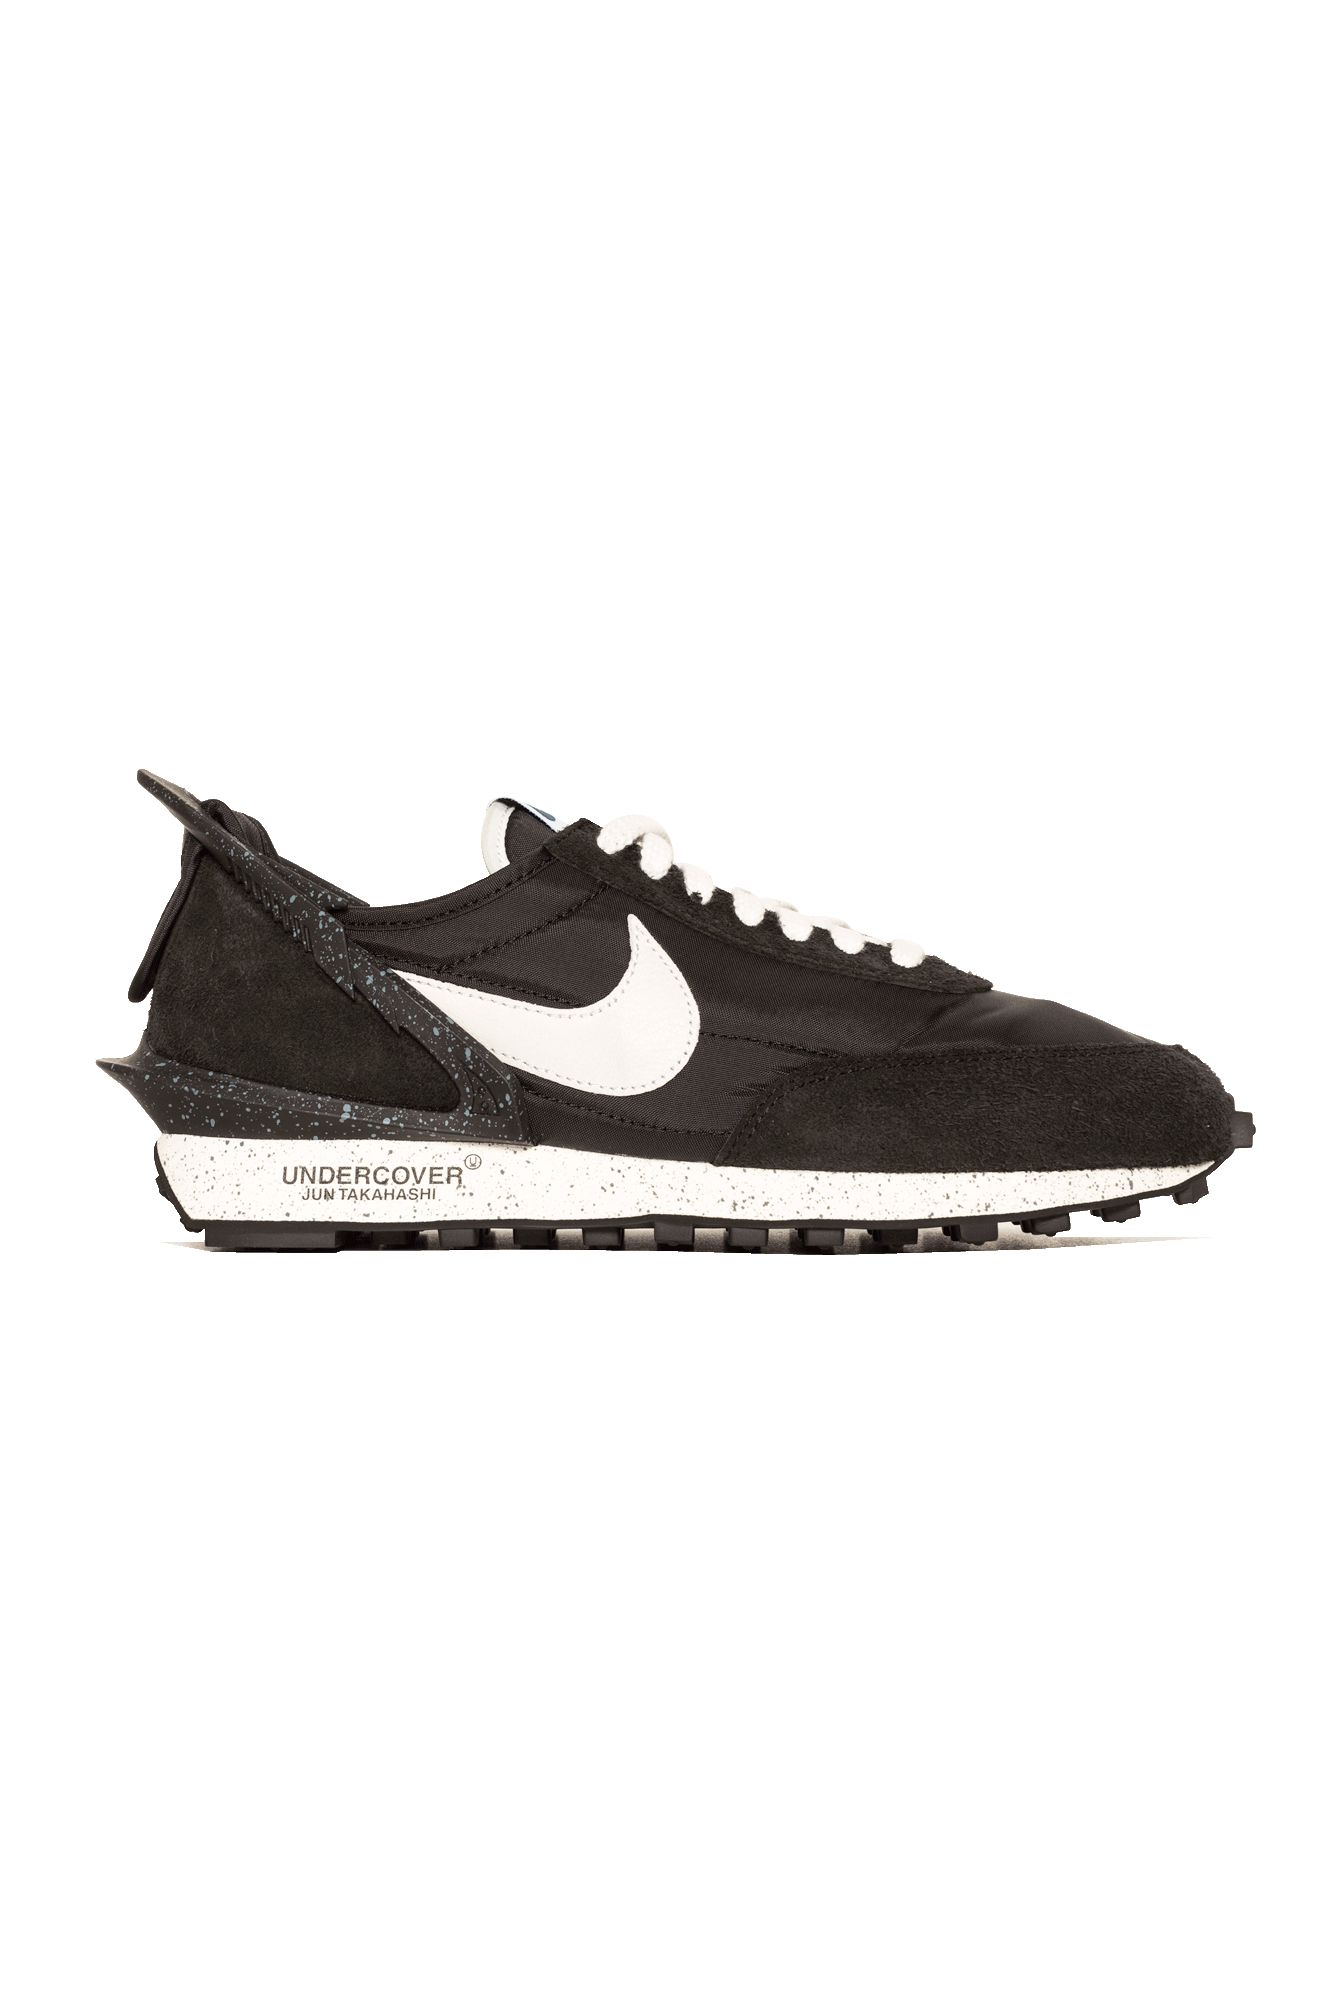 Sneakers Nike Daybreak / Undercover Black - One Block Down